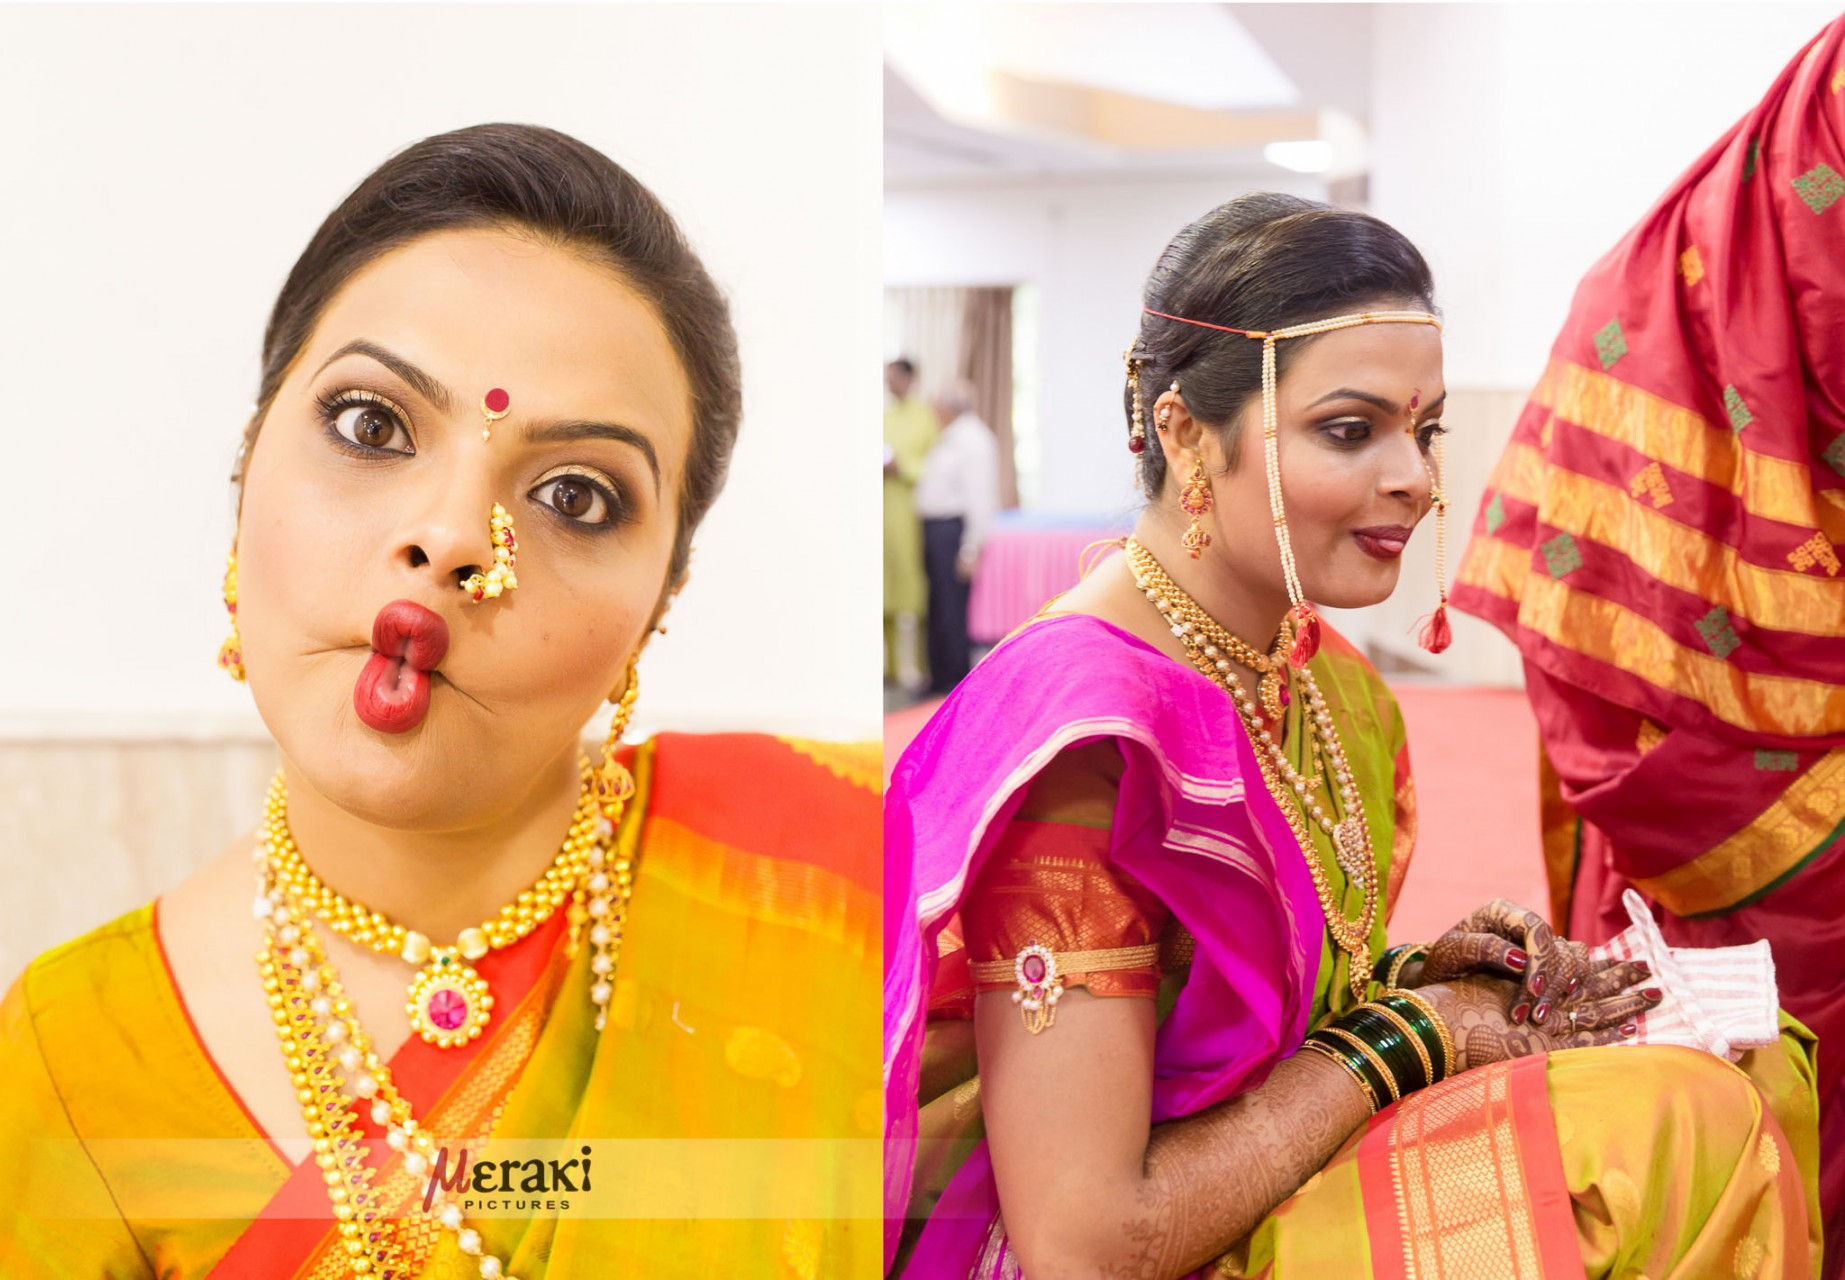 065-collage_09-Ajinkya_Maithili_Wedding-WeddingDay-WBS